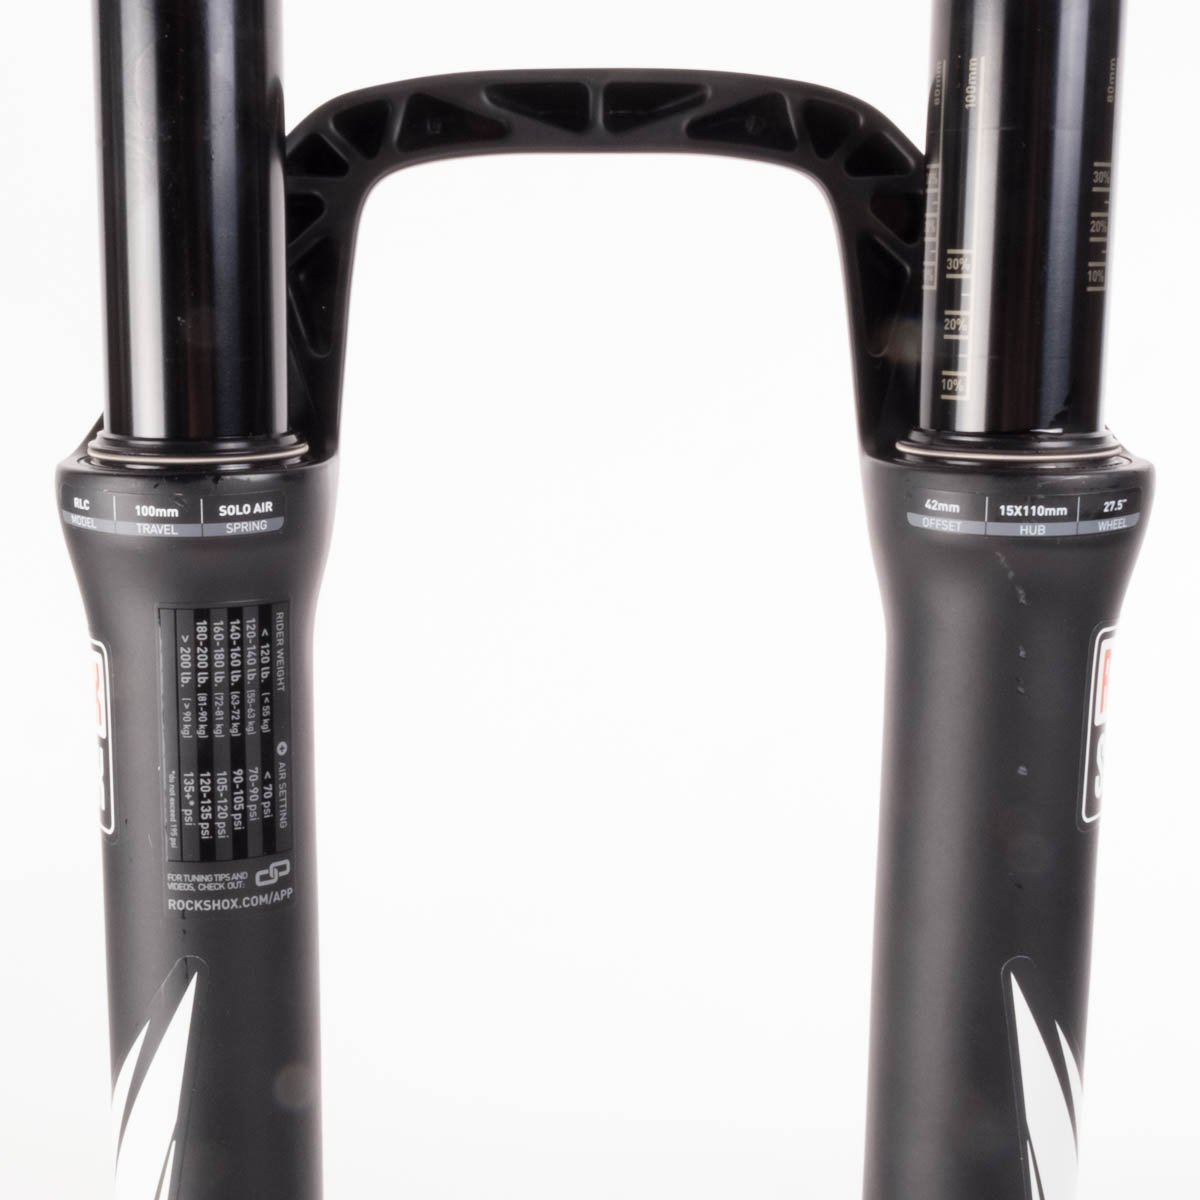 Rockshox Sid Rlc Fork 275 100mm Boost 15x110mm Rock Shox World Cup Wht Carbon 26 Crown Adjustment Tapered Steerer A1 Diffusion Black Sports Outdoors